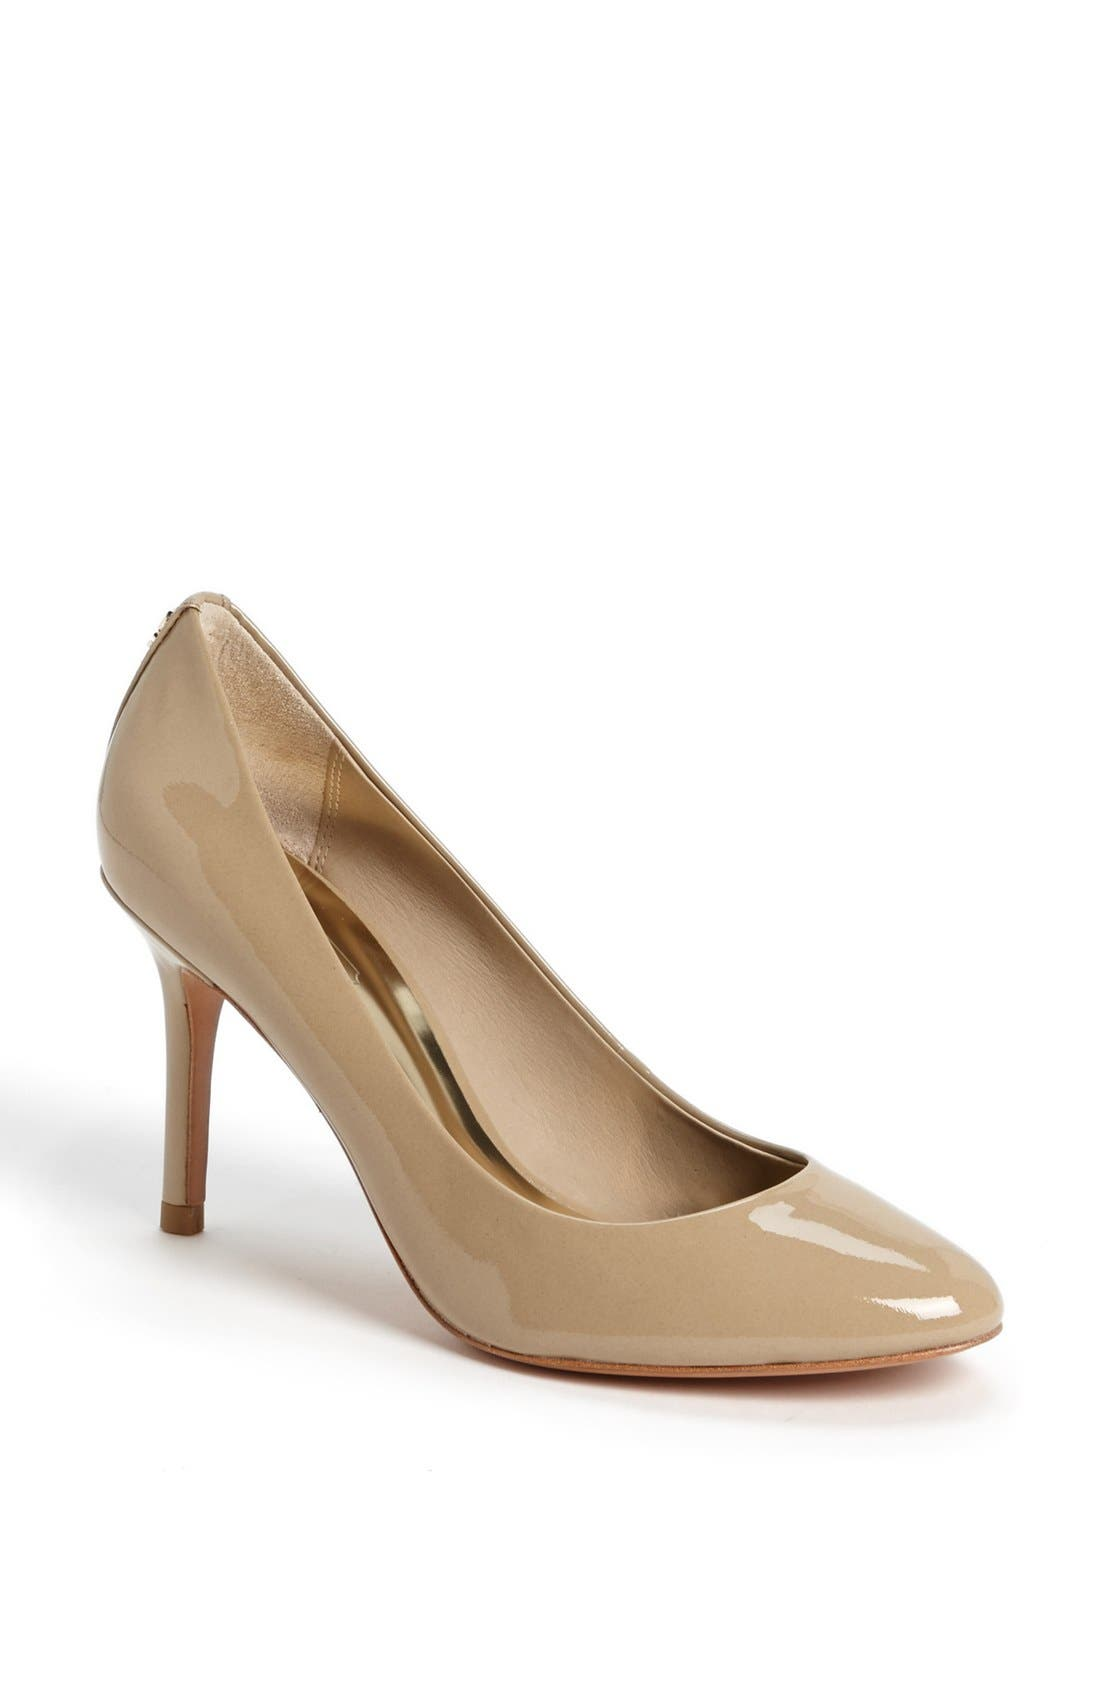 Alternate Image 1 Selected - COACH 'Nala' Pump